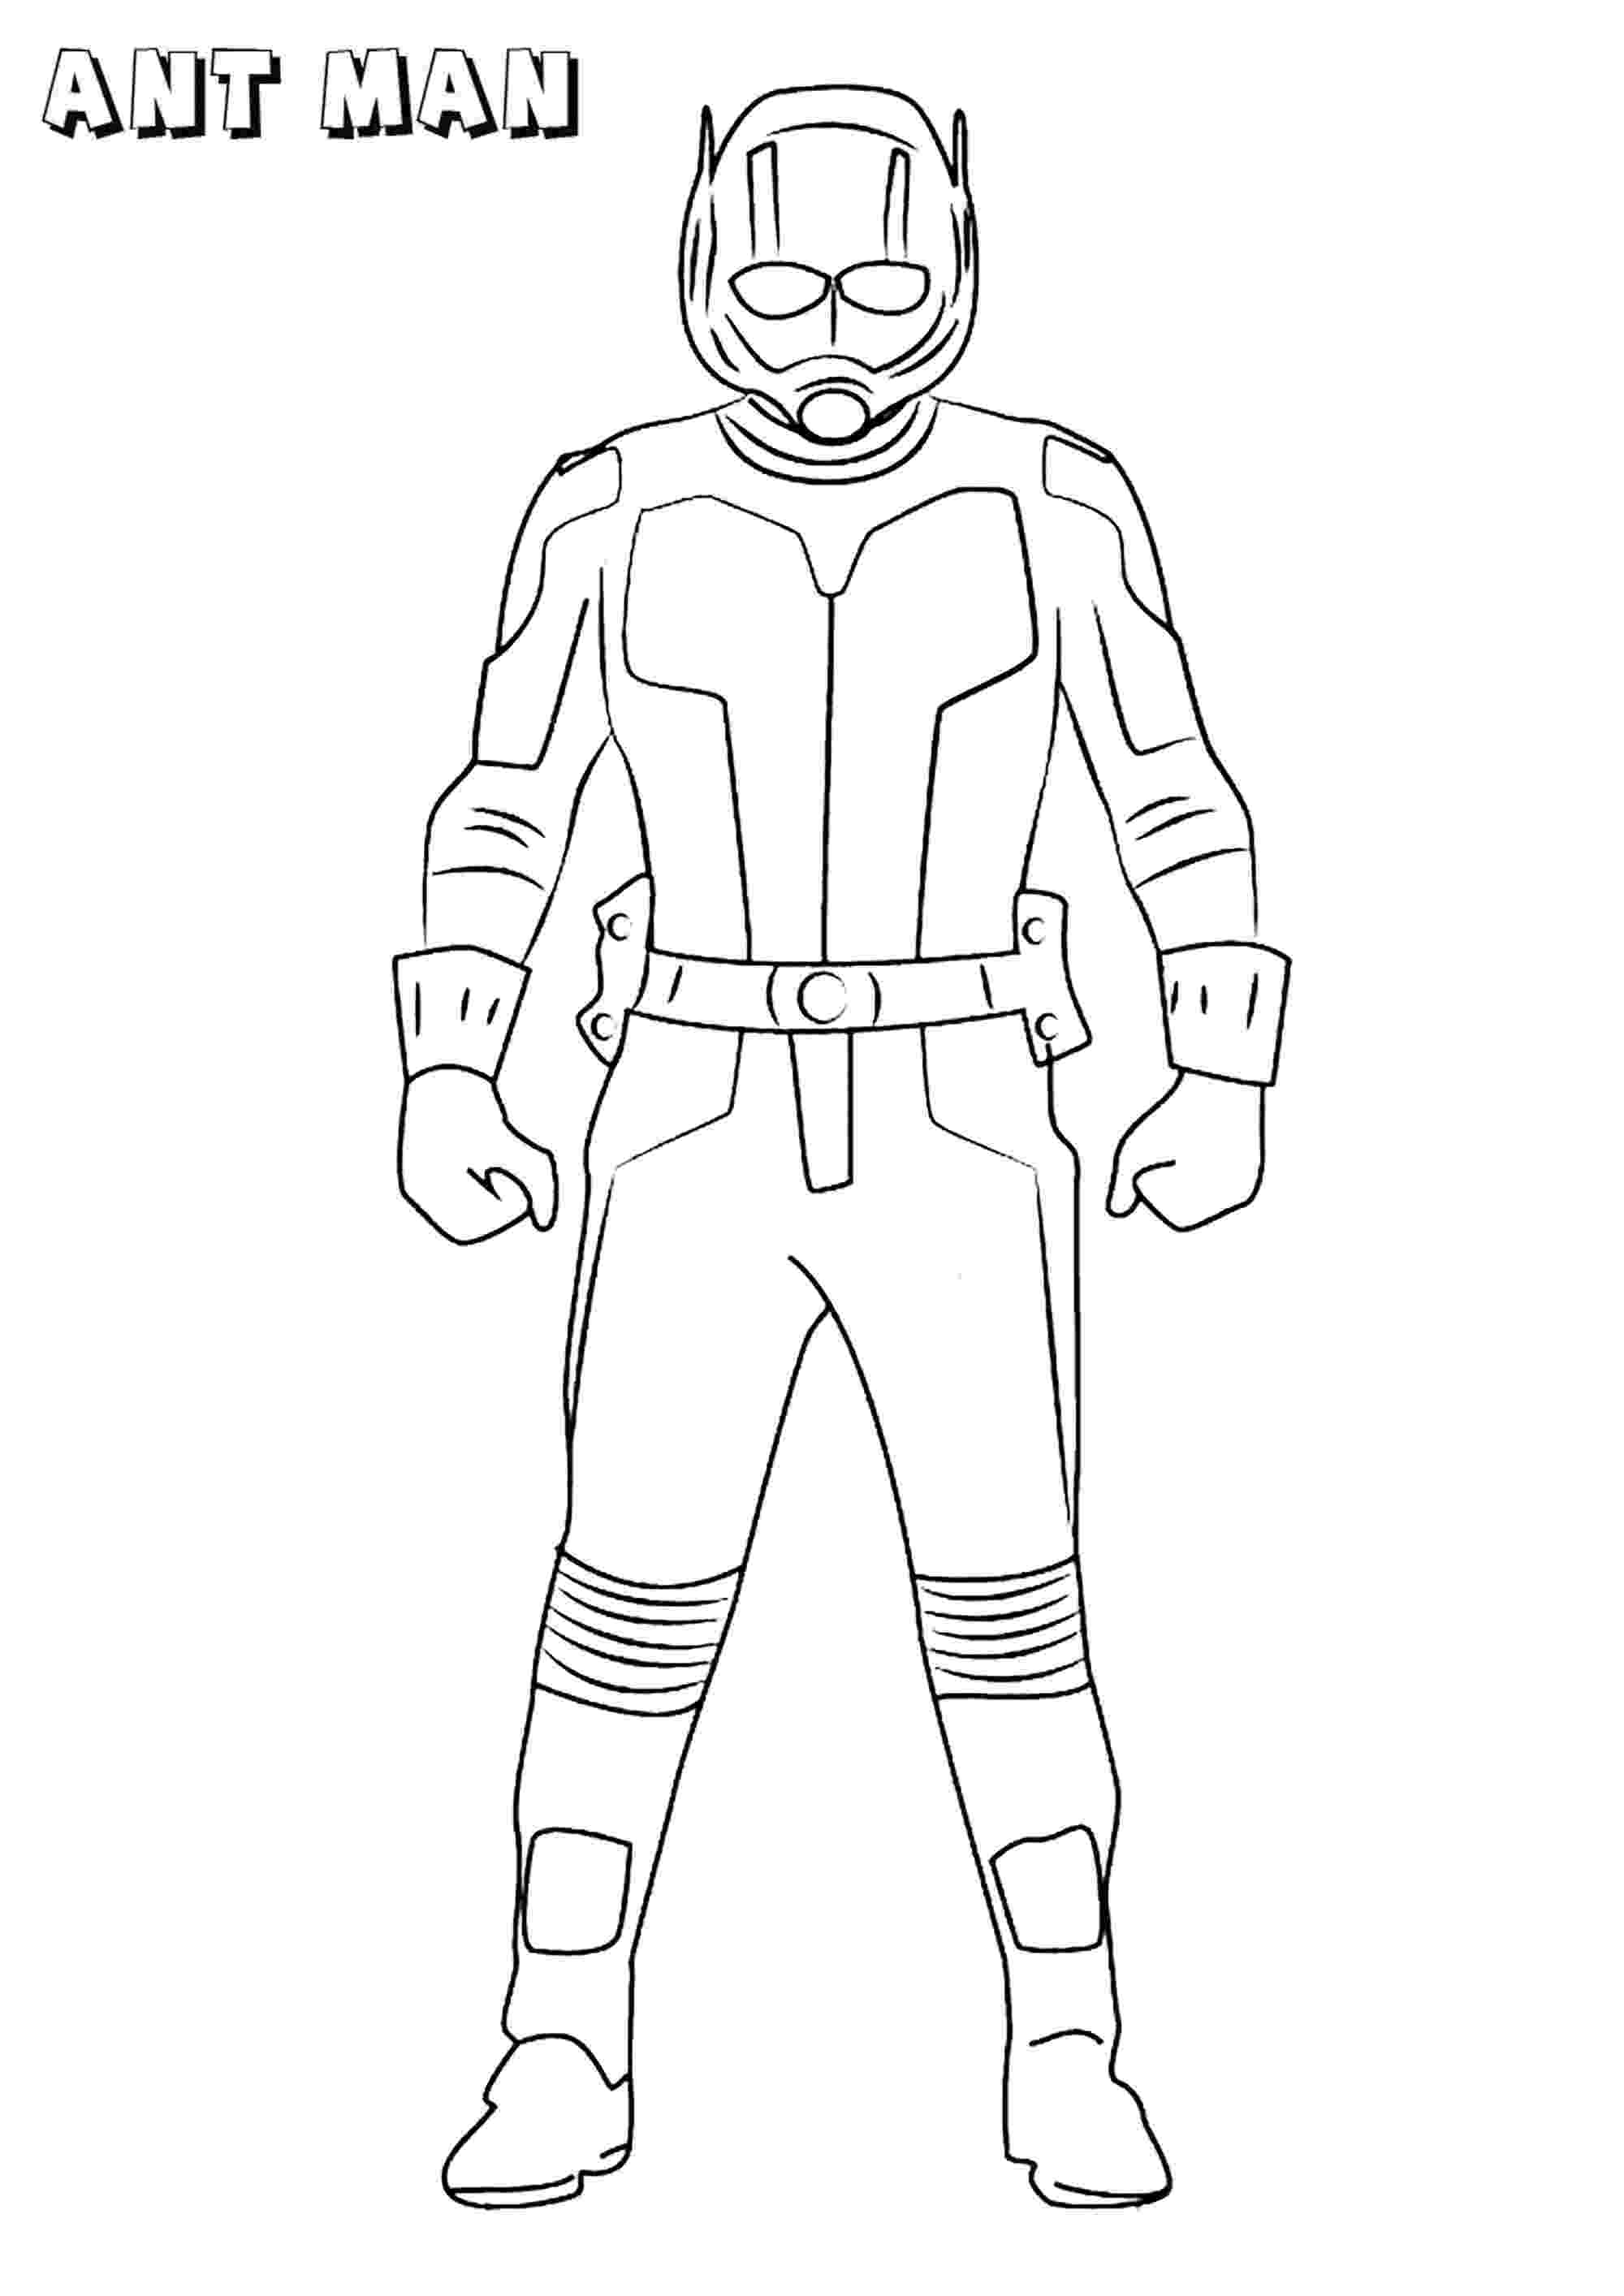 man coloring page ant man coloring pages best coloring pages for kids coloring man page